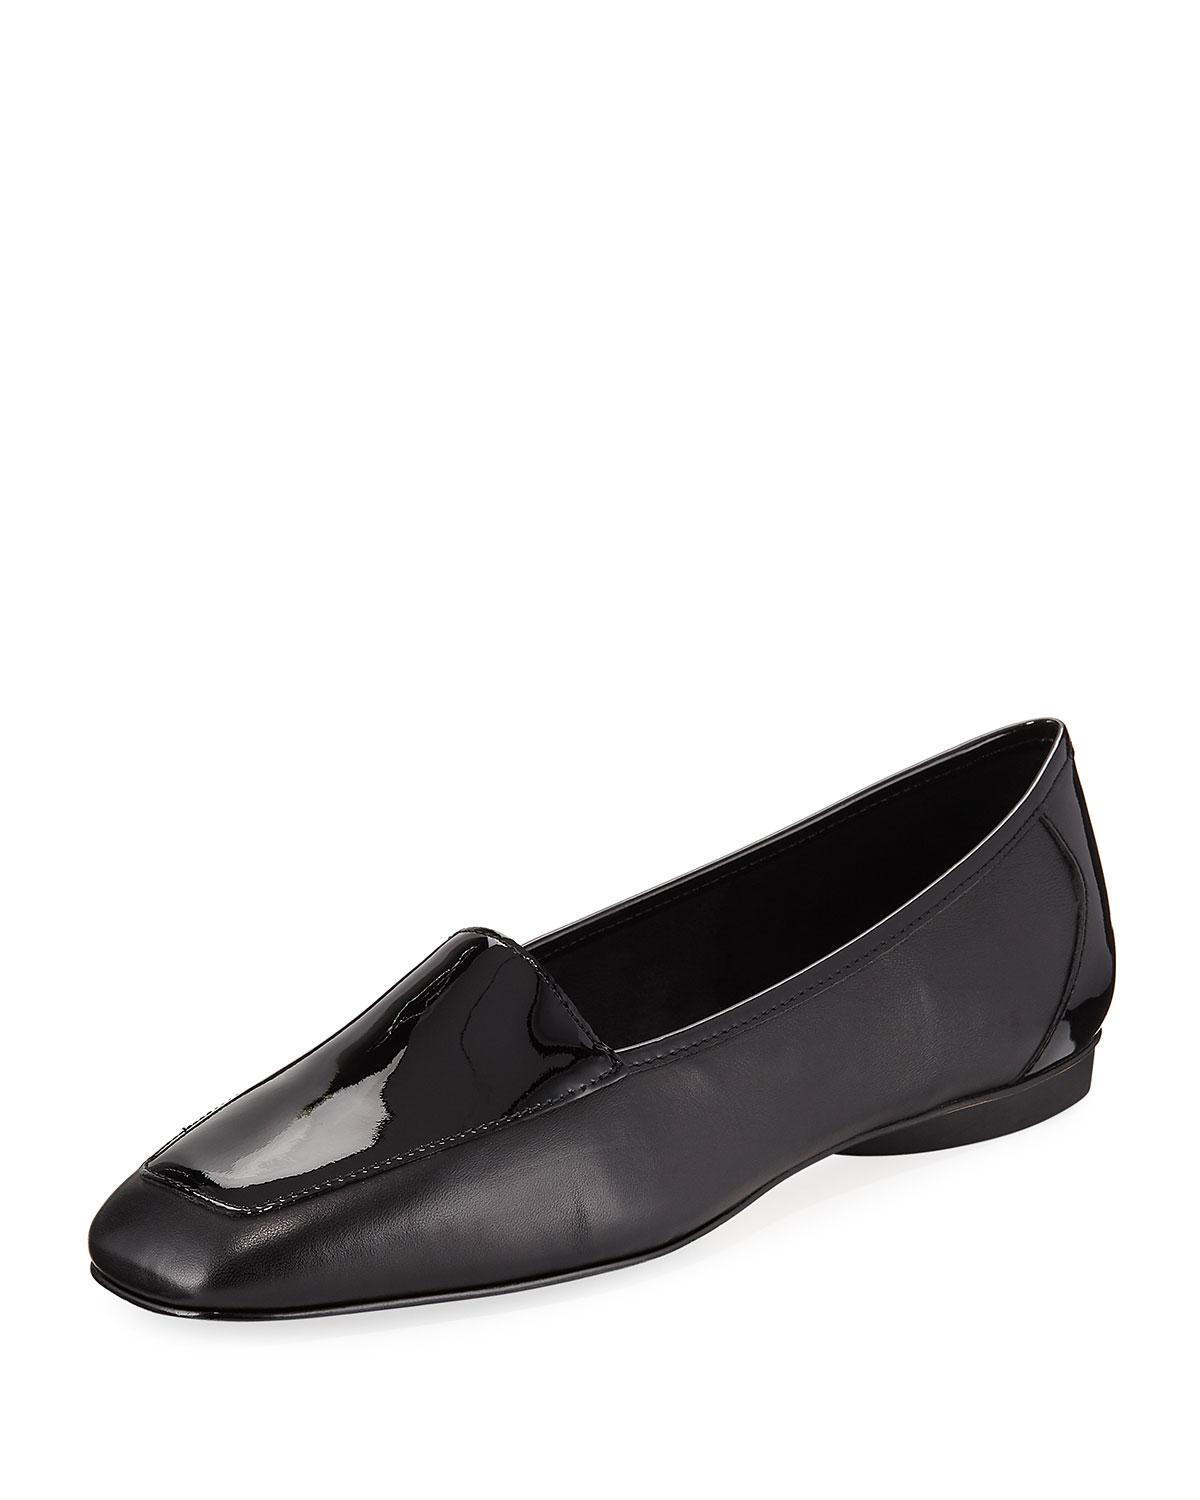 Deedee Patent Leather Loafers BR2TmJ01qt